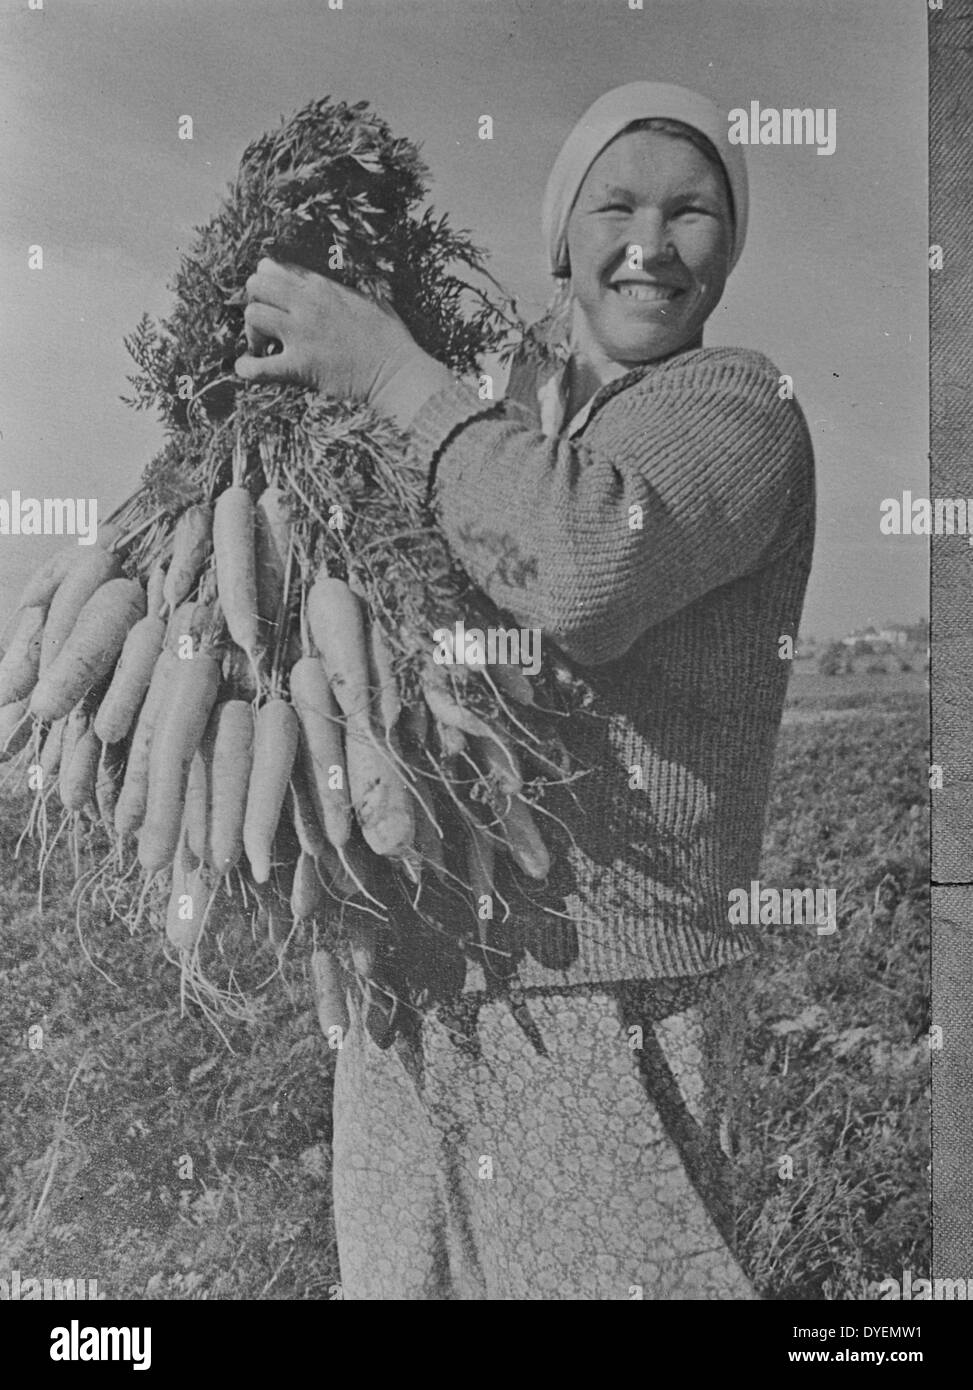 Marusya Sukhova with carrots grown on a collective farm in the Gorki region in the USSR - Stock Image